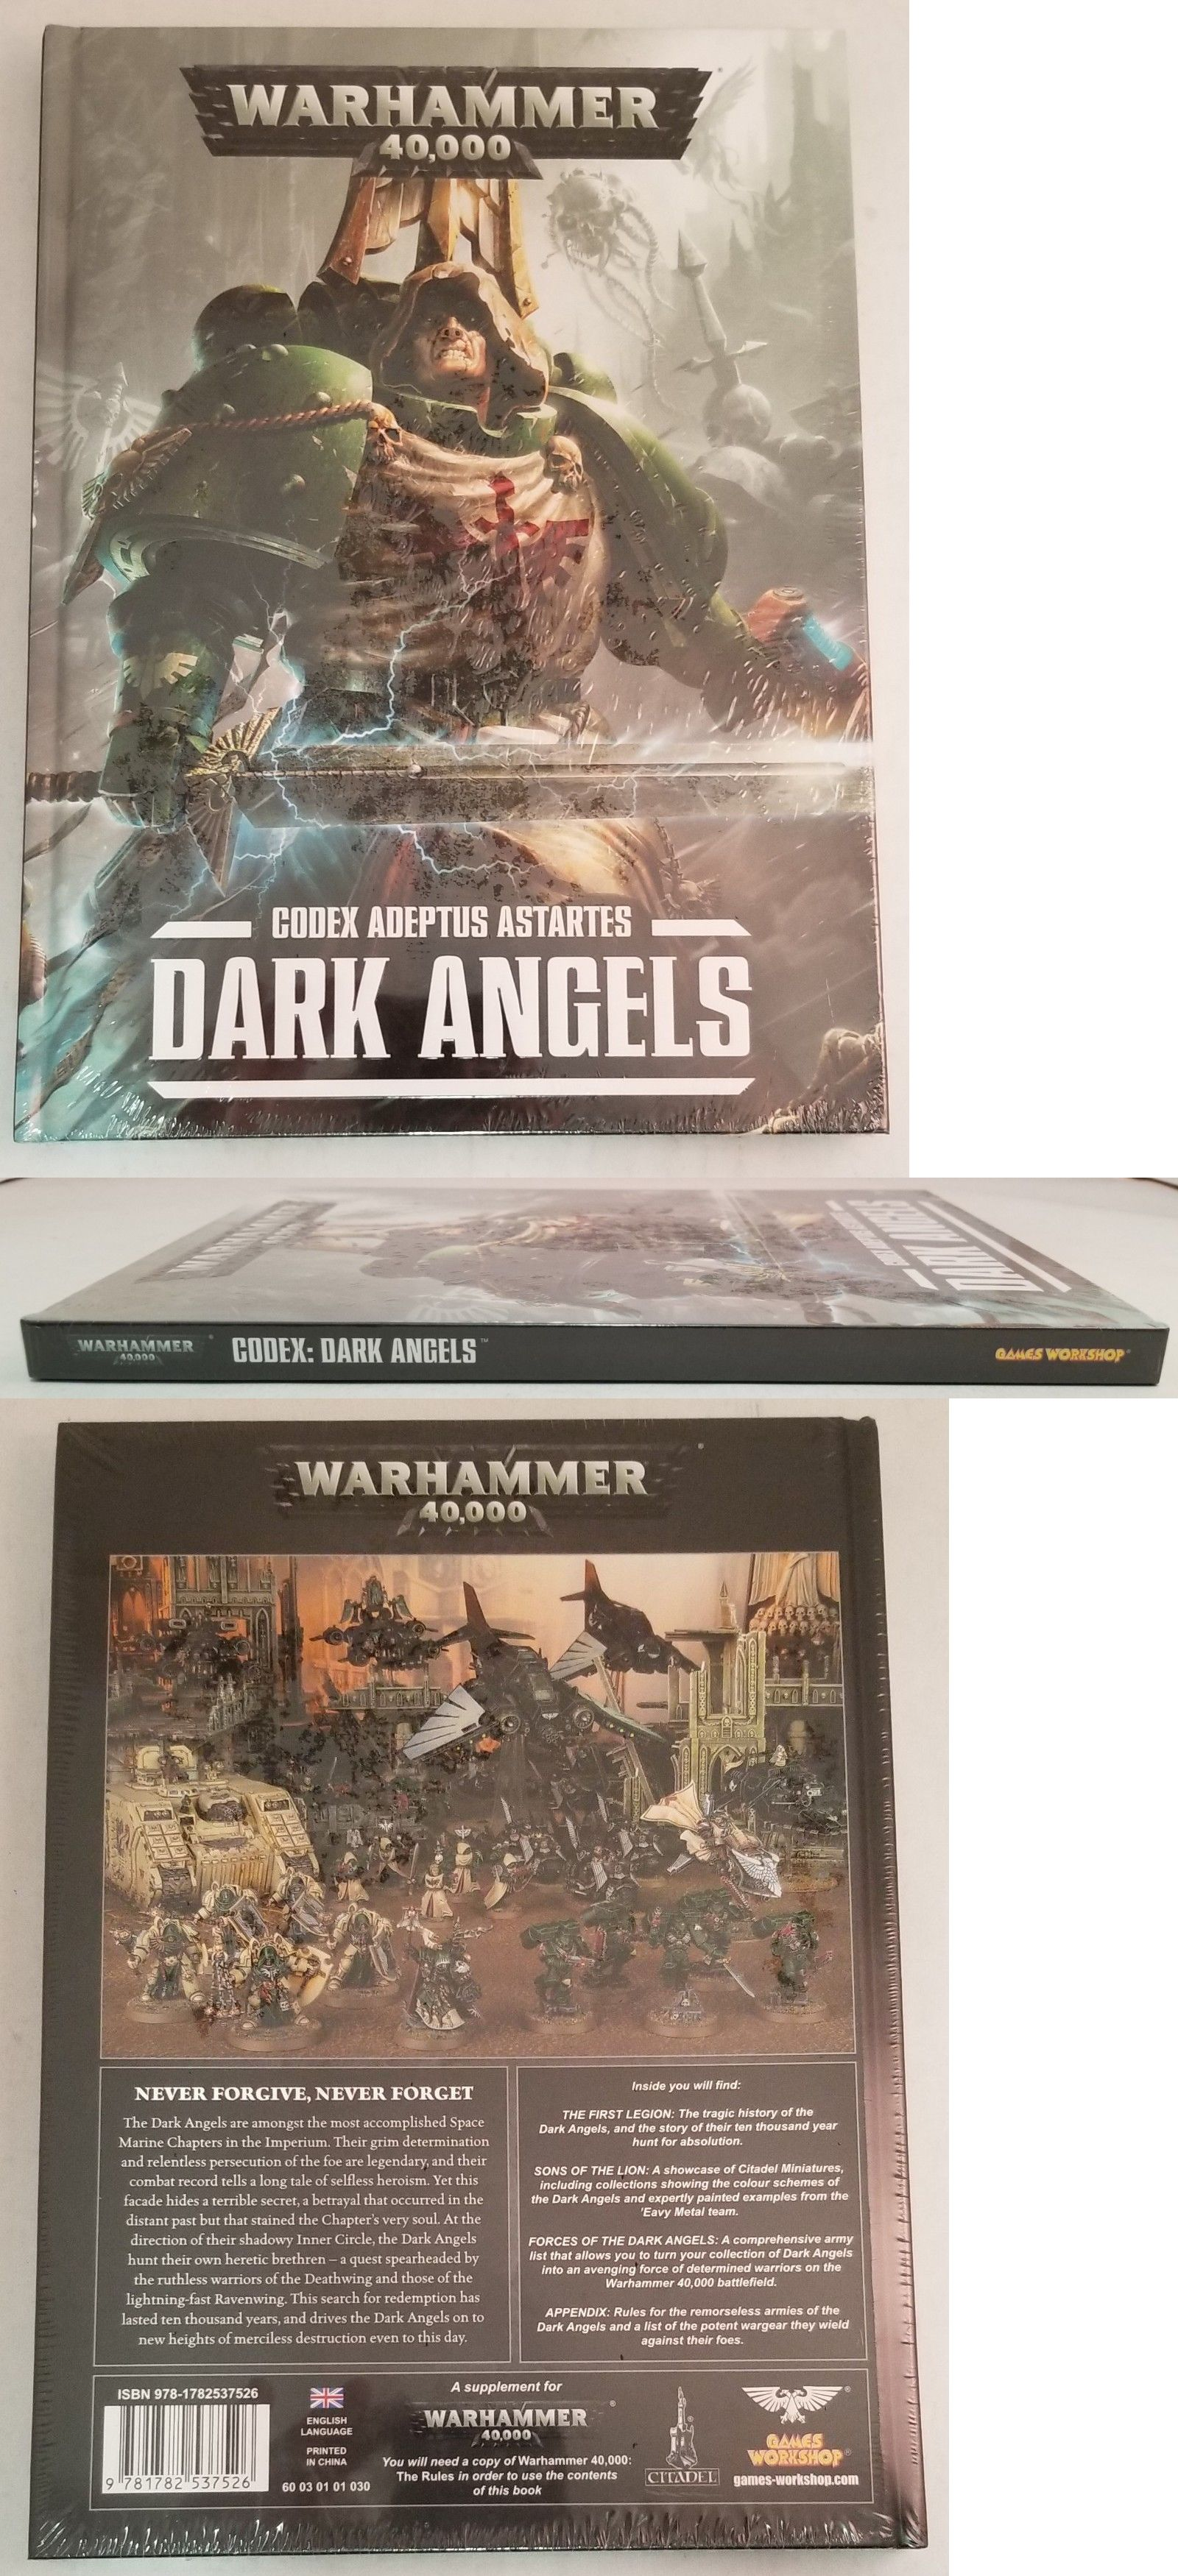 40K Rulebooks and Publications 90944: Warhammer 40,000 Codex Adeptus